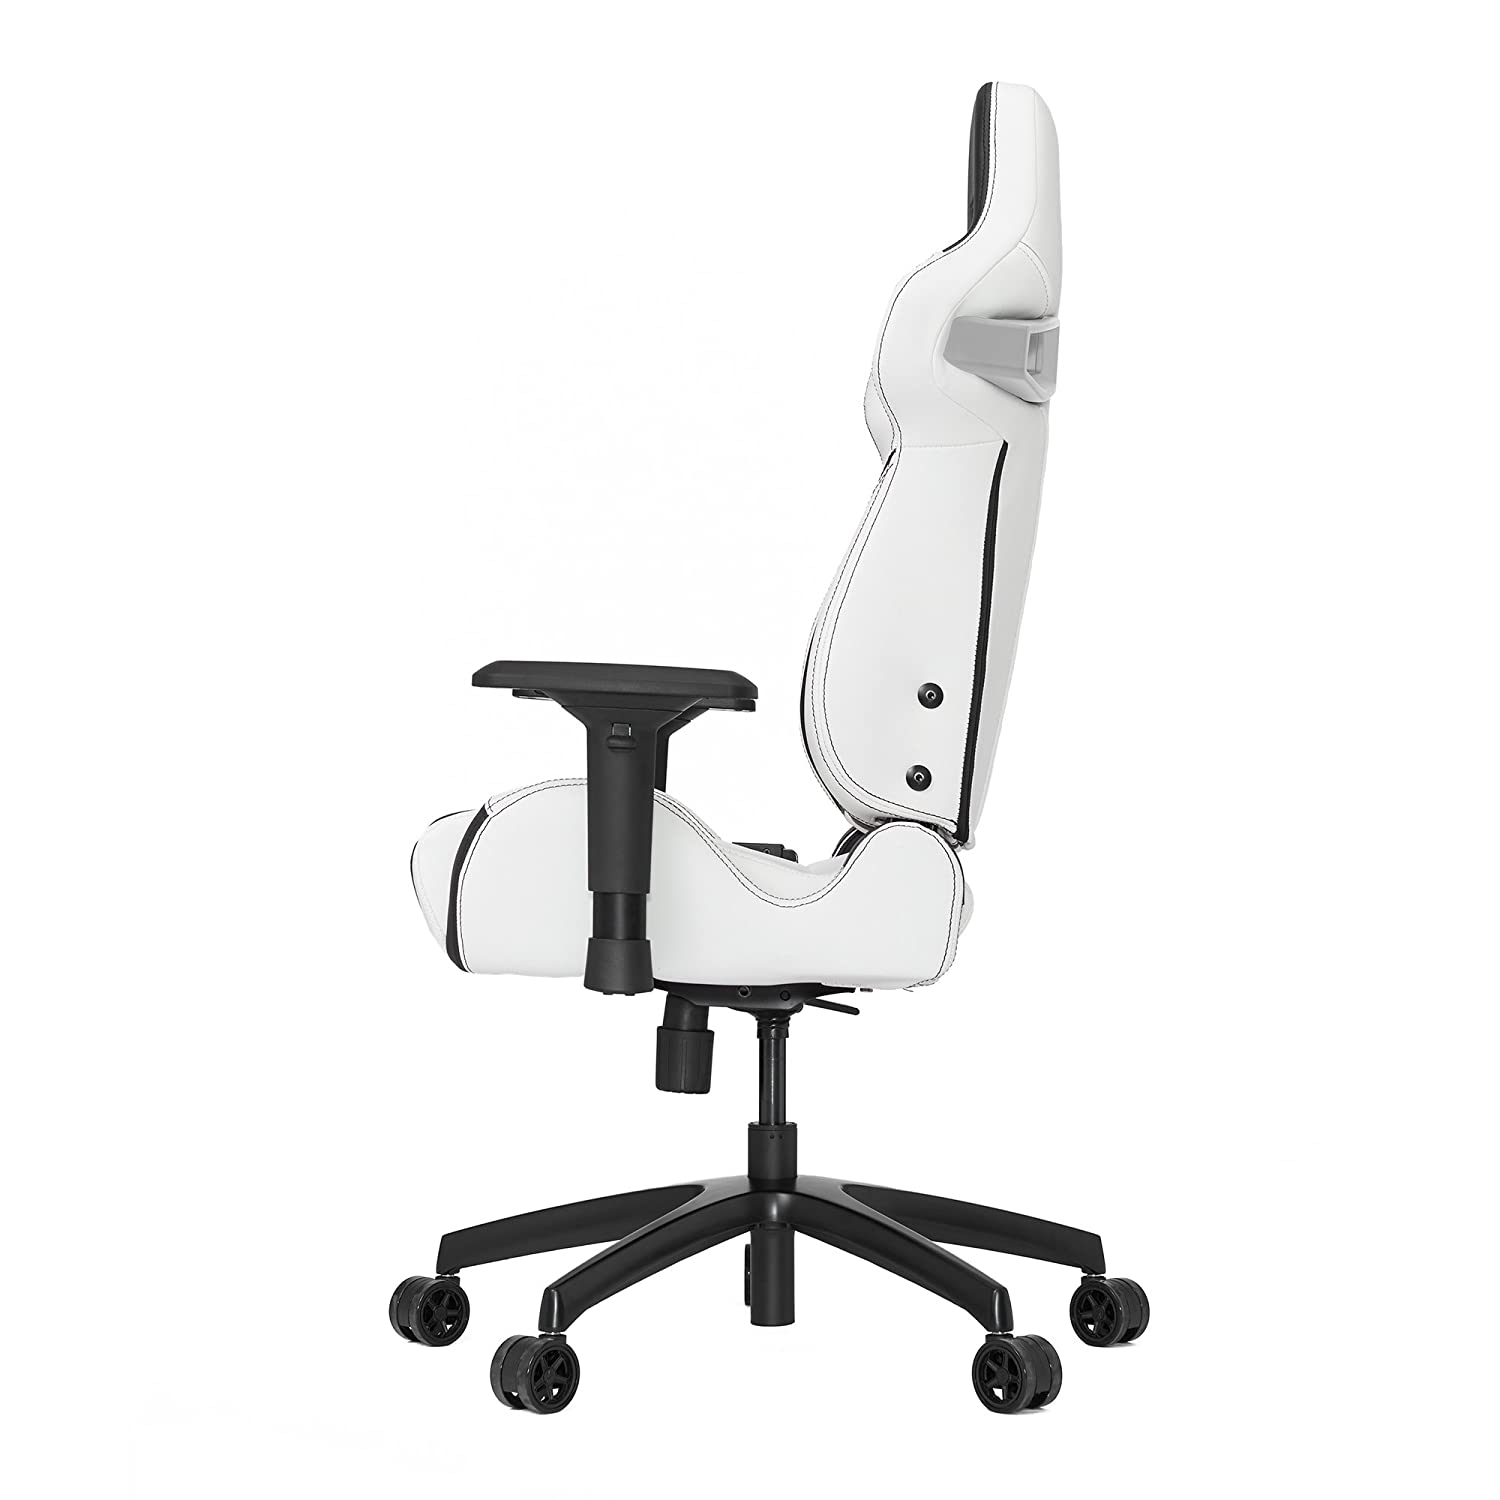 Silla Gaming vertagear Racing Series, SL4000 blanco/negro: Amazon.es: Hogar